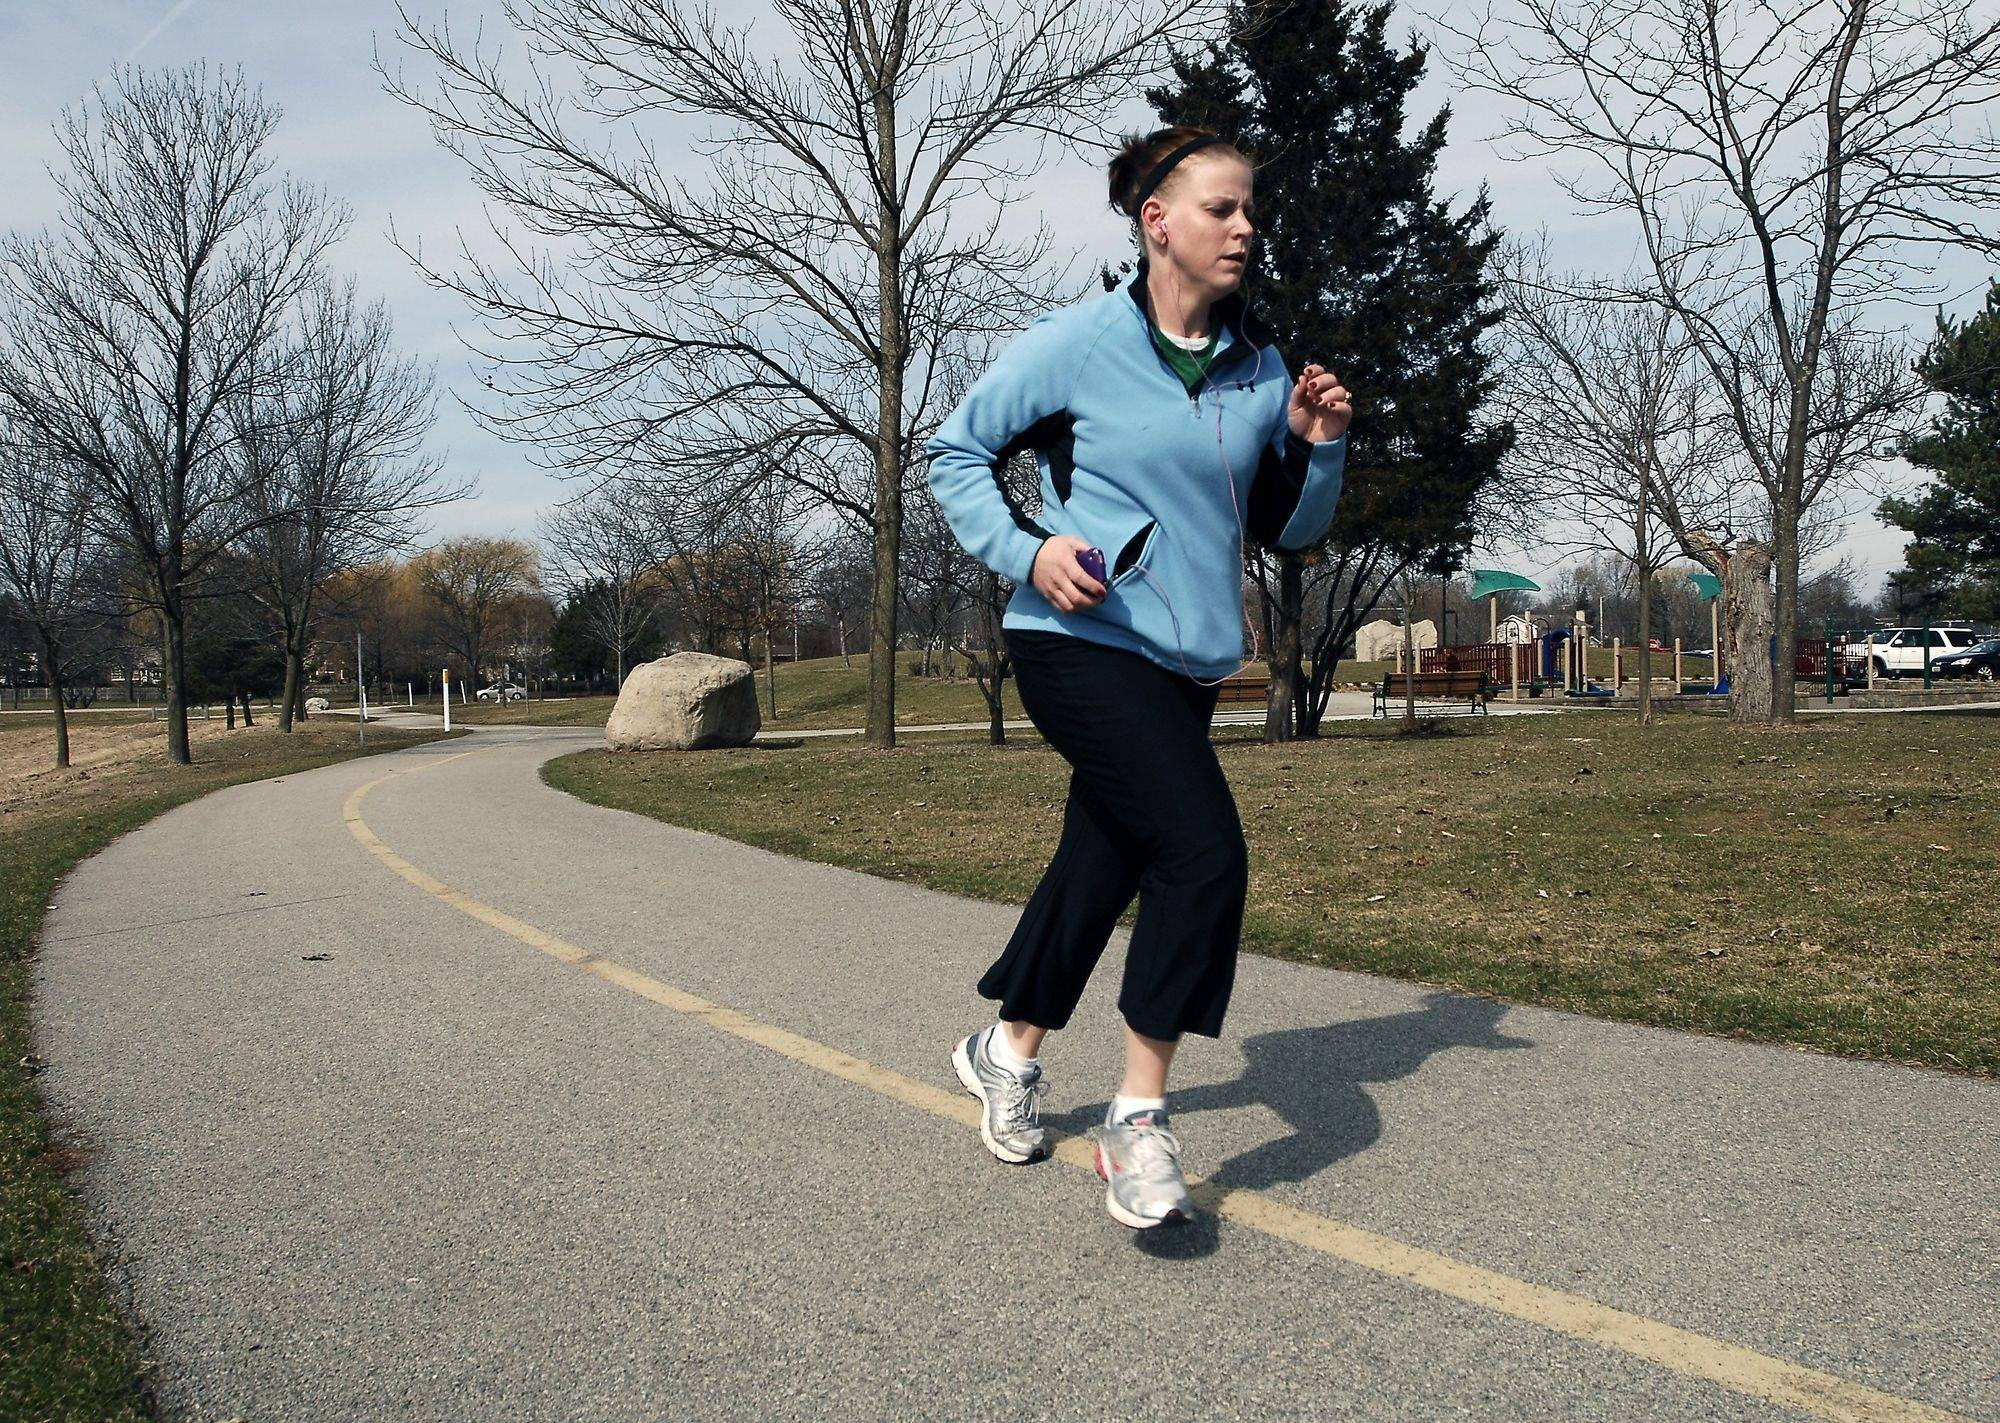 Jeanne Brock of Mount Prospect takes advantage of Thursday's warm weather to train at Lake Arlington for the Shamrock Shuffle run on Sunday in Chicago. Unfortunately Sunday's forecast is calling for a high in the 30s with a chance of snow.